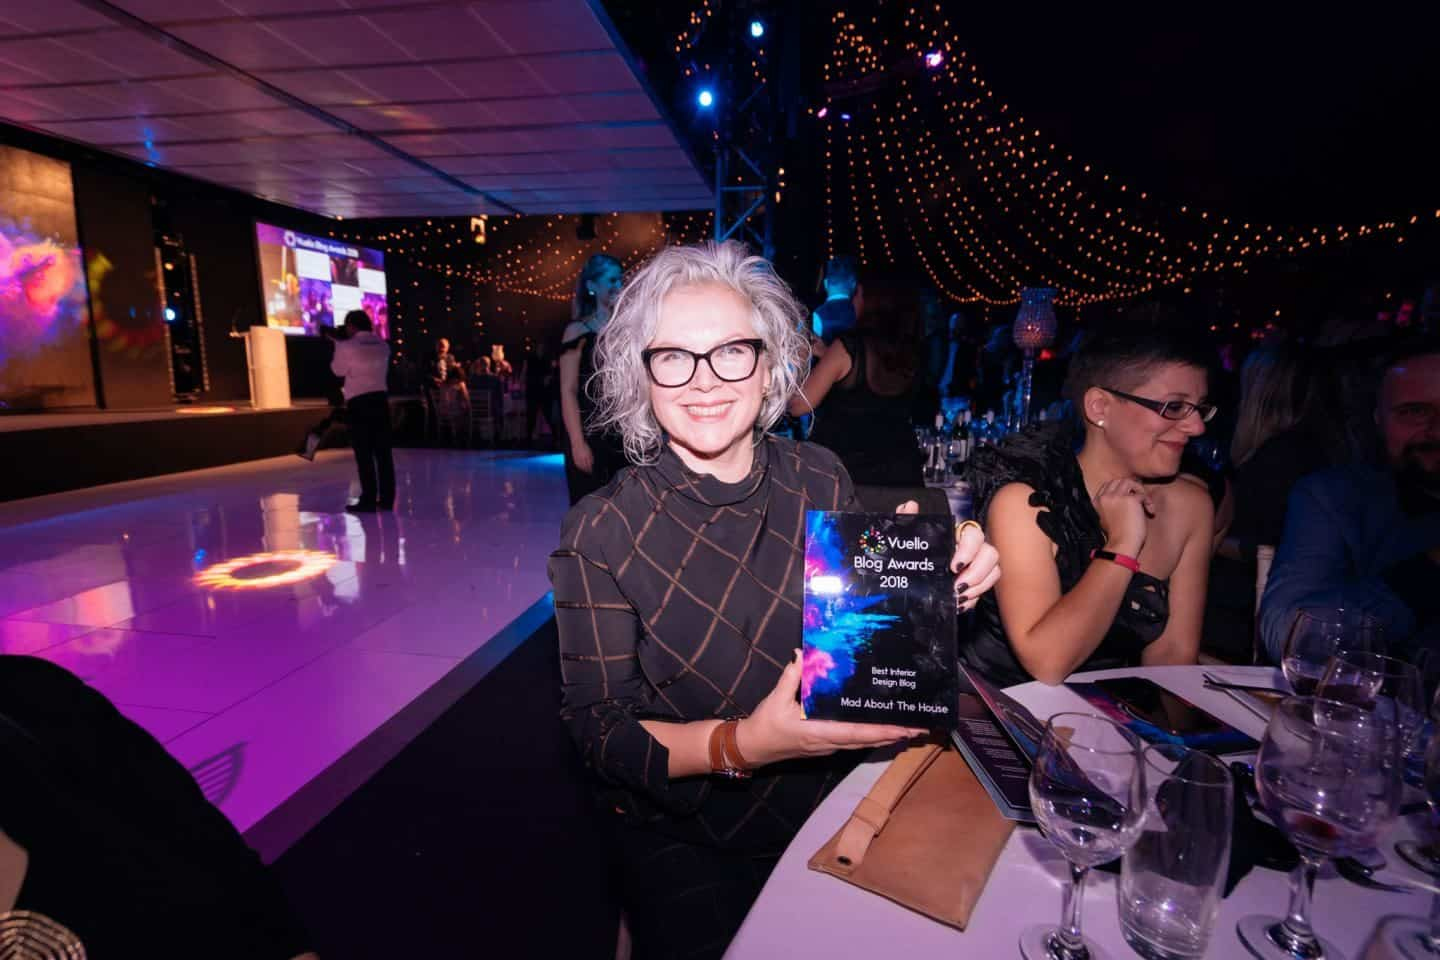 Vuelio Blog Awards 2018 at the Bloomsbury Big Top - winner Kate Watson-Smyth with her award